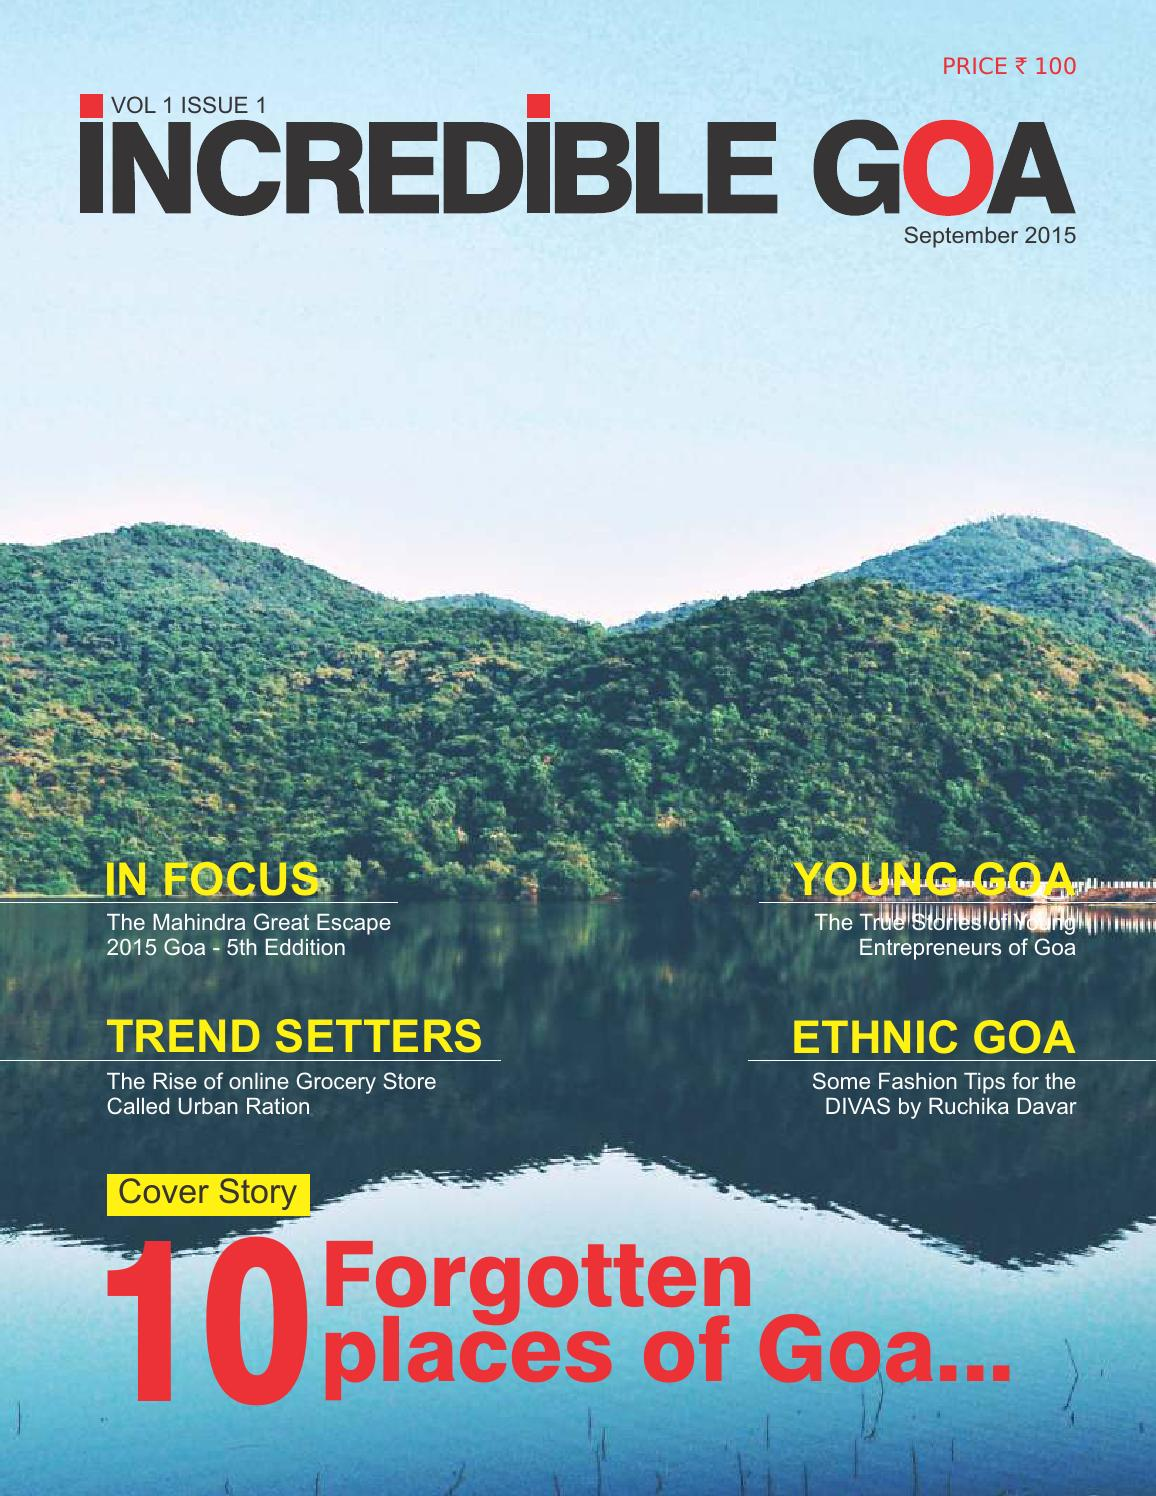 incredible goa vol 1 issue 1 september 2015 online vesrion by incredible goa issuu. Black Bedroom Furniture Sets. Home Design Ideas